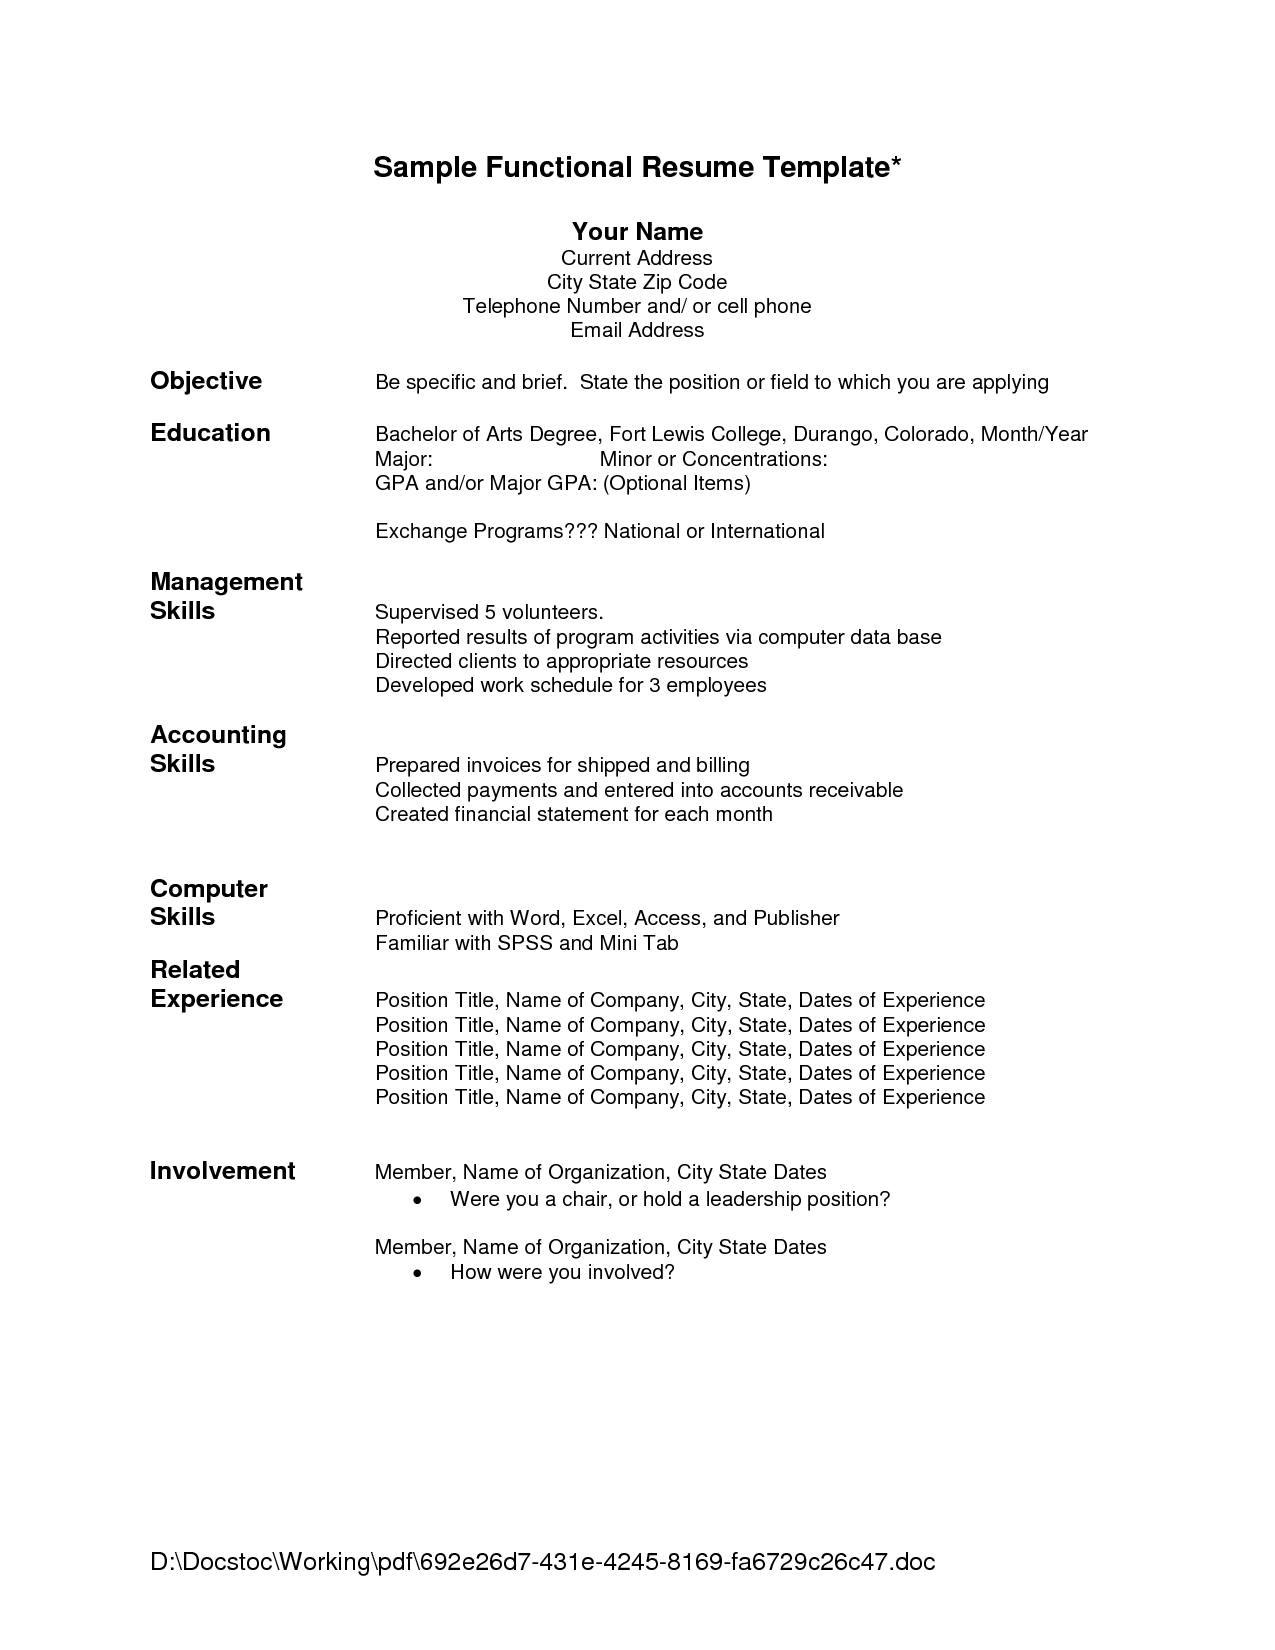 Current College Student Resume Examples Sample One Page Functional Resume  Google Search  Resumes